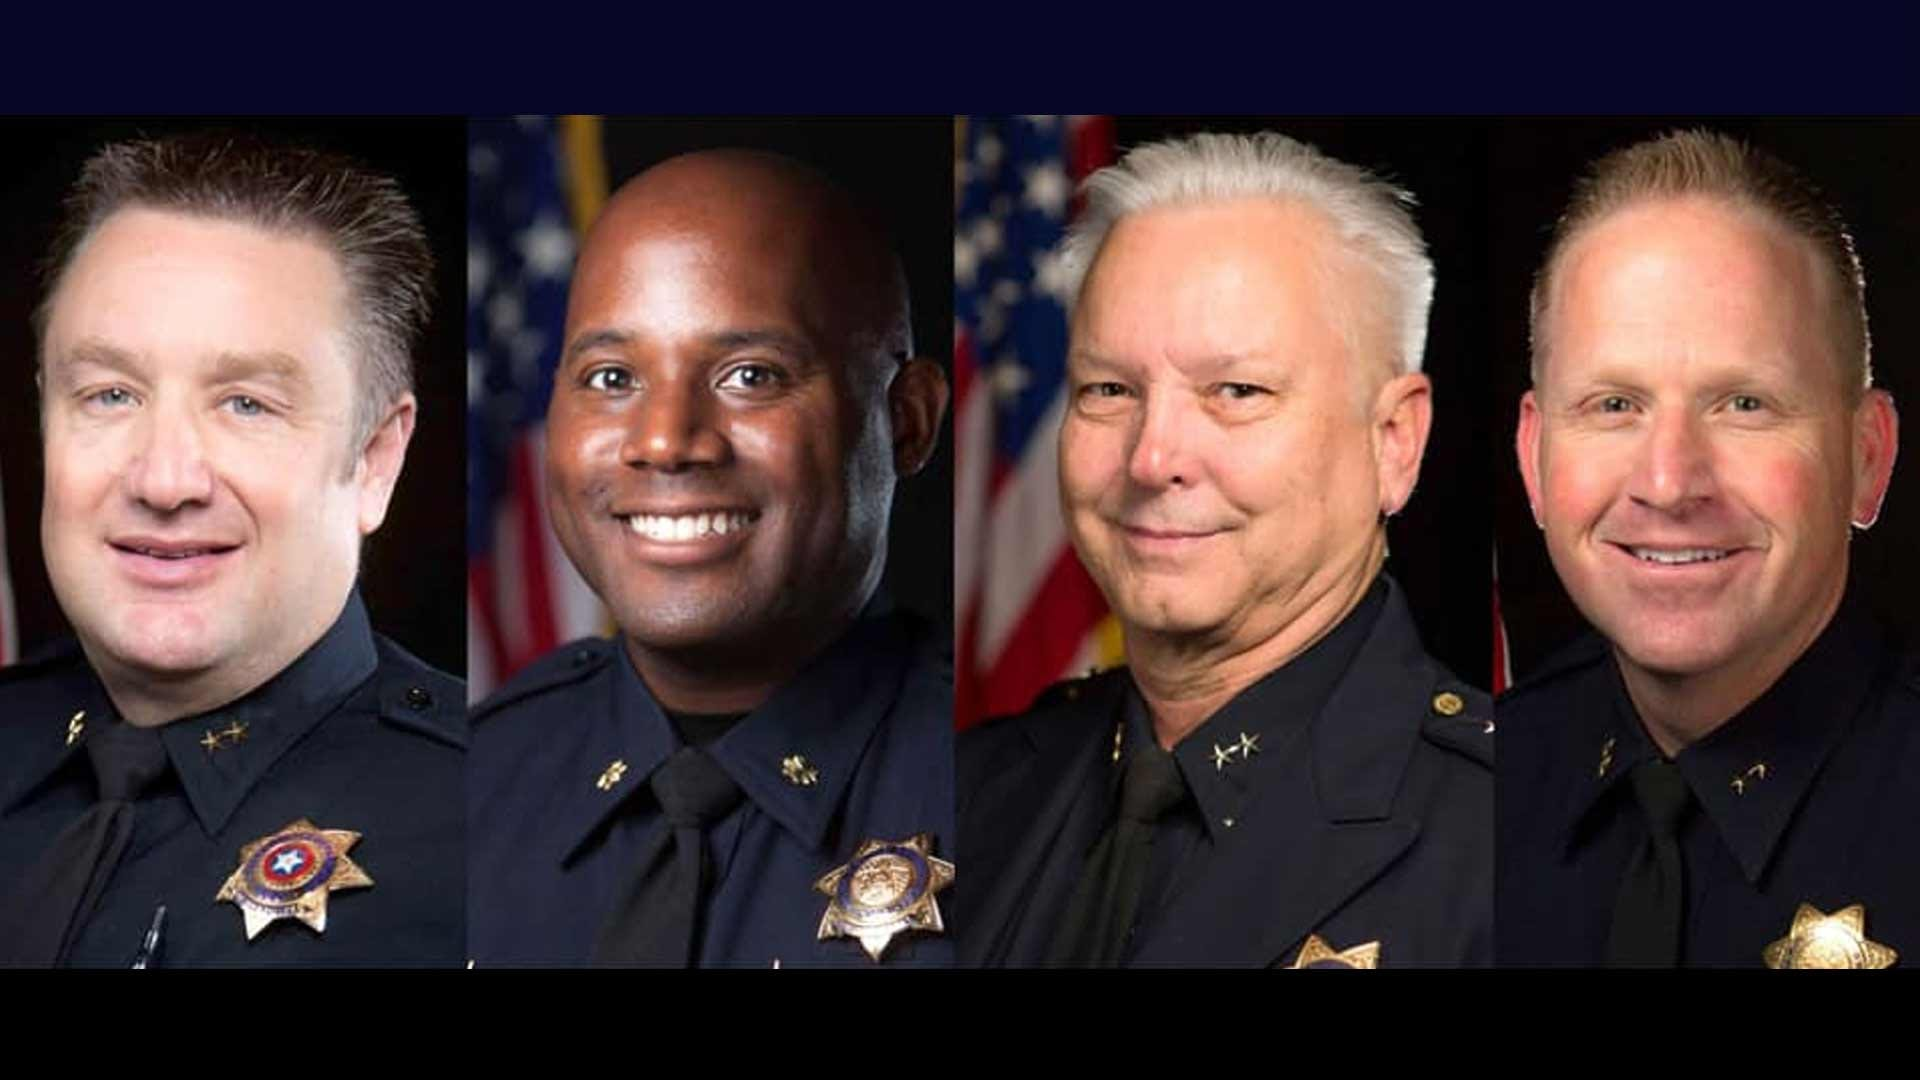 Police Chief Candidates To Attend Meet And Greet